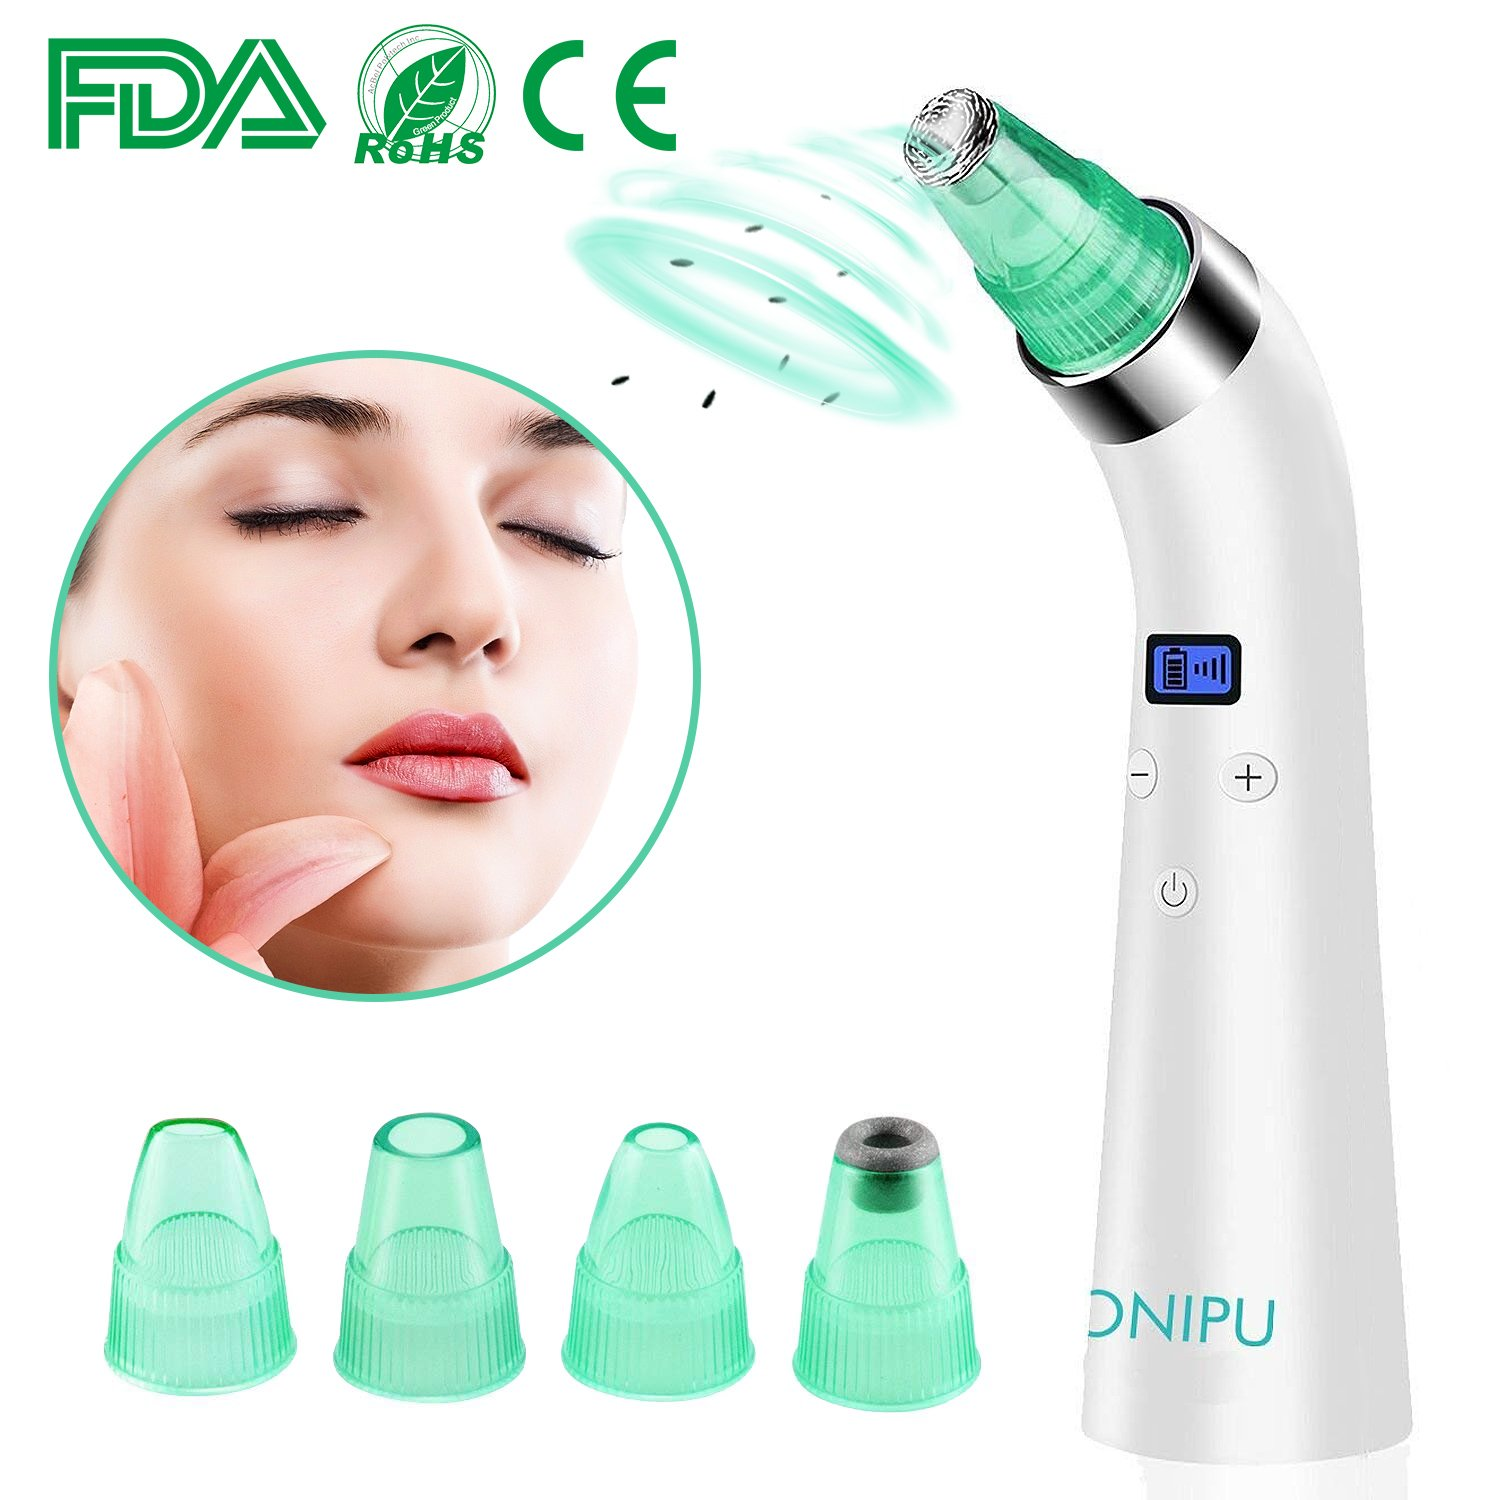 Blackhead Remover Pore Vacuum, ONIPU Electric Blackhead Remover Tool Facial Skin Care Pore Cleanser Suction Rechargeable Microdermabrasion Machine Acne Comedone Extractor with 4 Probes & LCD Display Perfect for Men & Women ONI-01